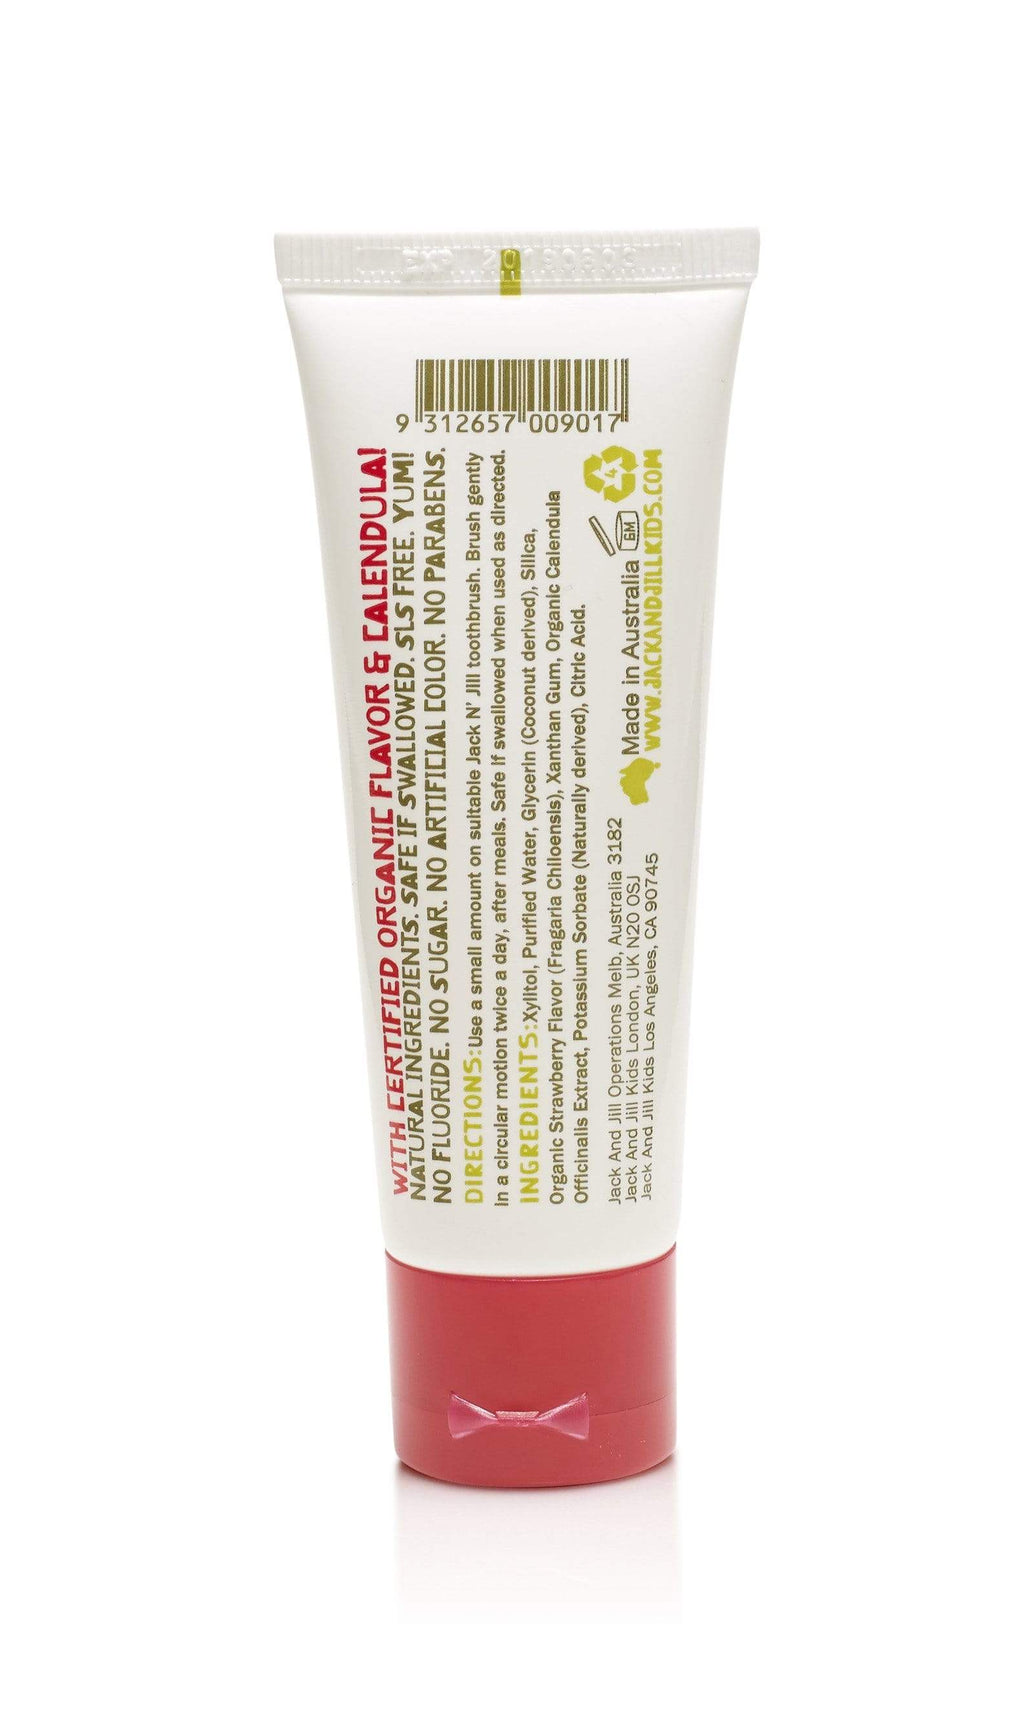 Jack N' Jill Oral Care Jack N' Jill Toothpaste (Strawberry)